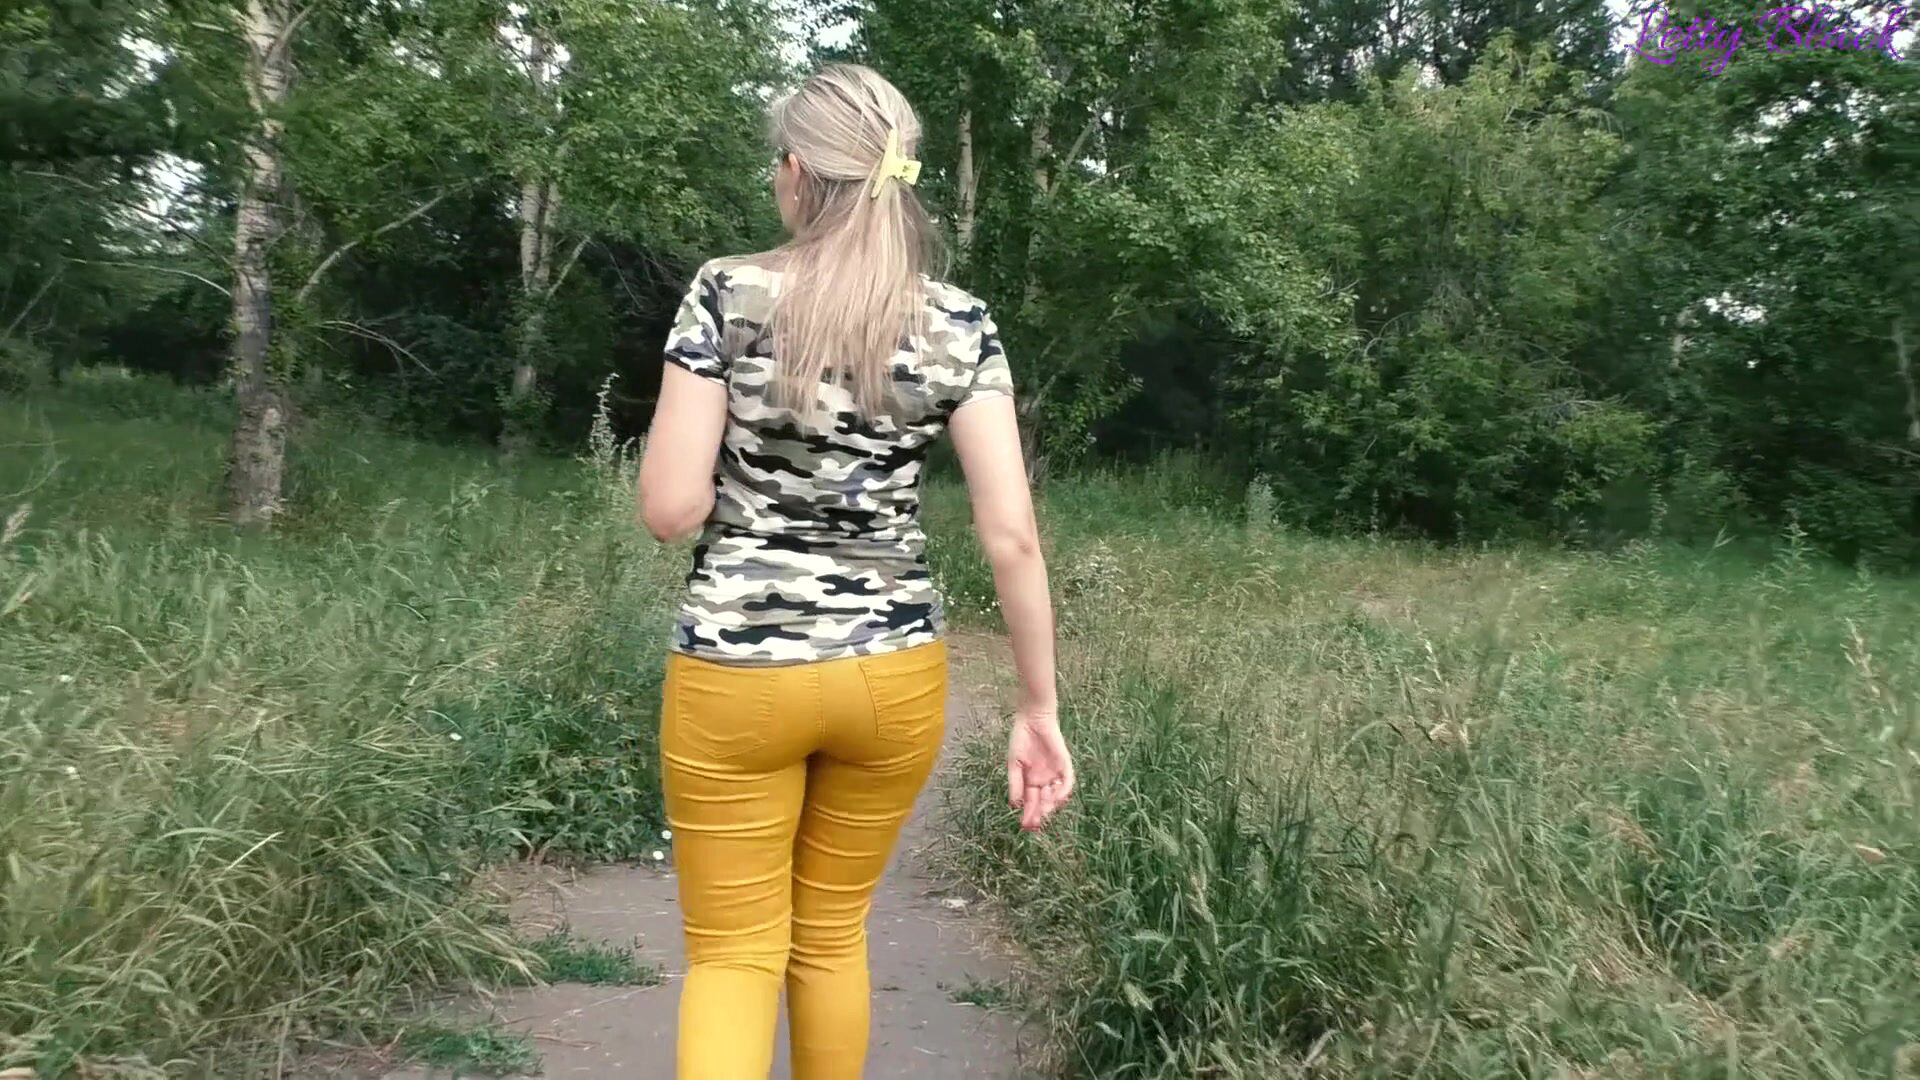 Quickie Fuck with Stranger in Park - Outdoor Cum in Mouth